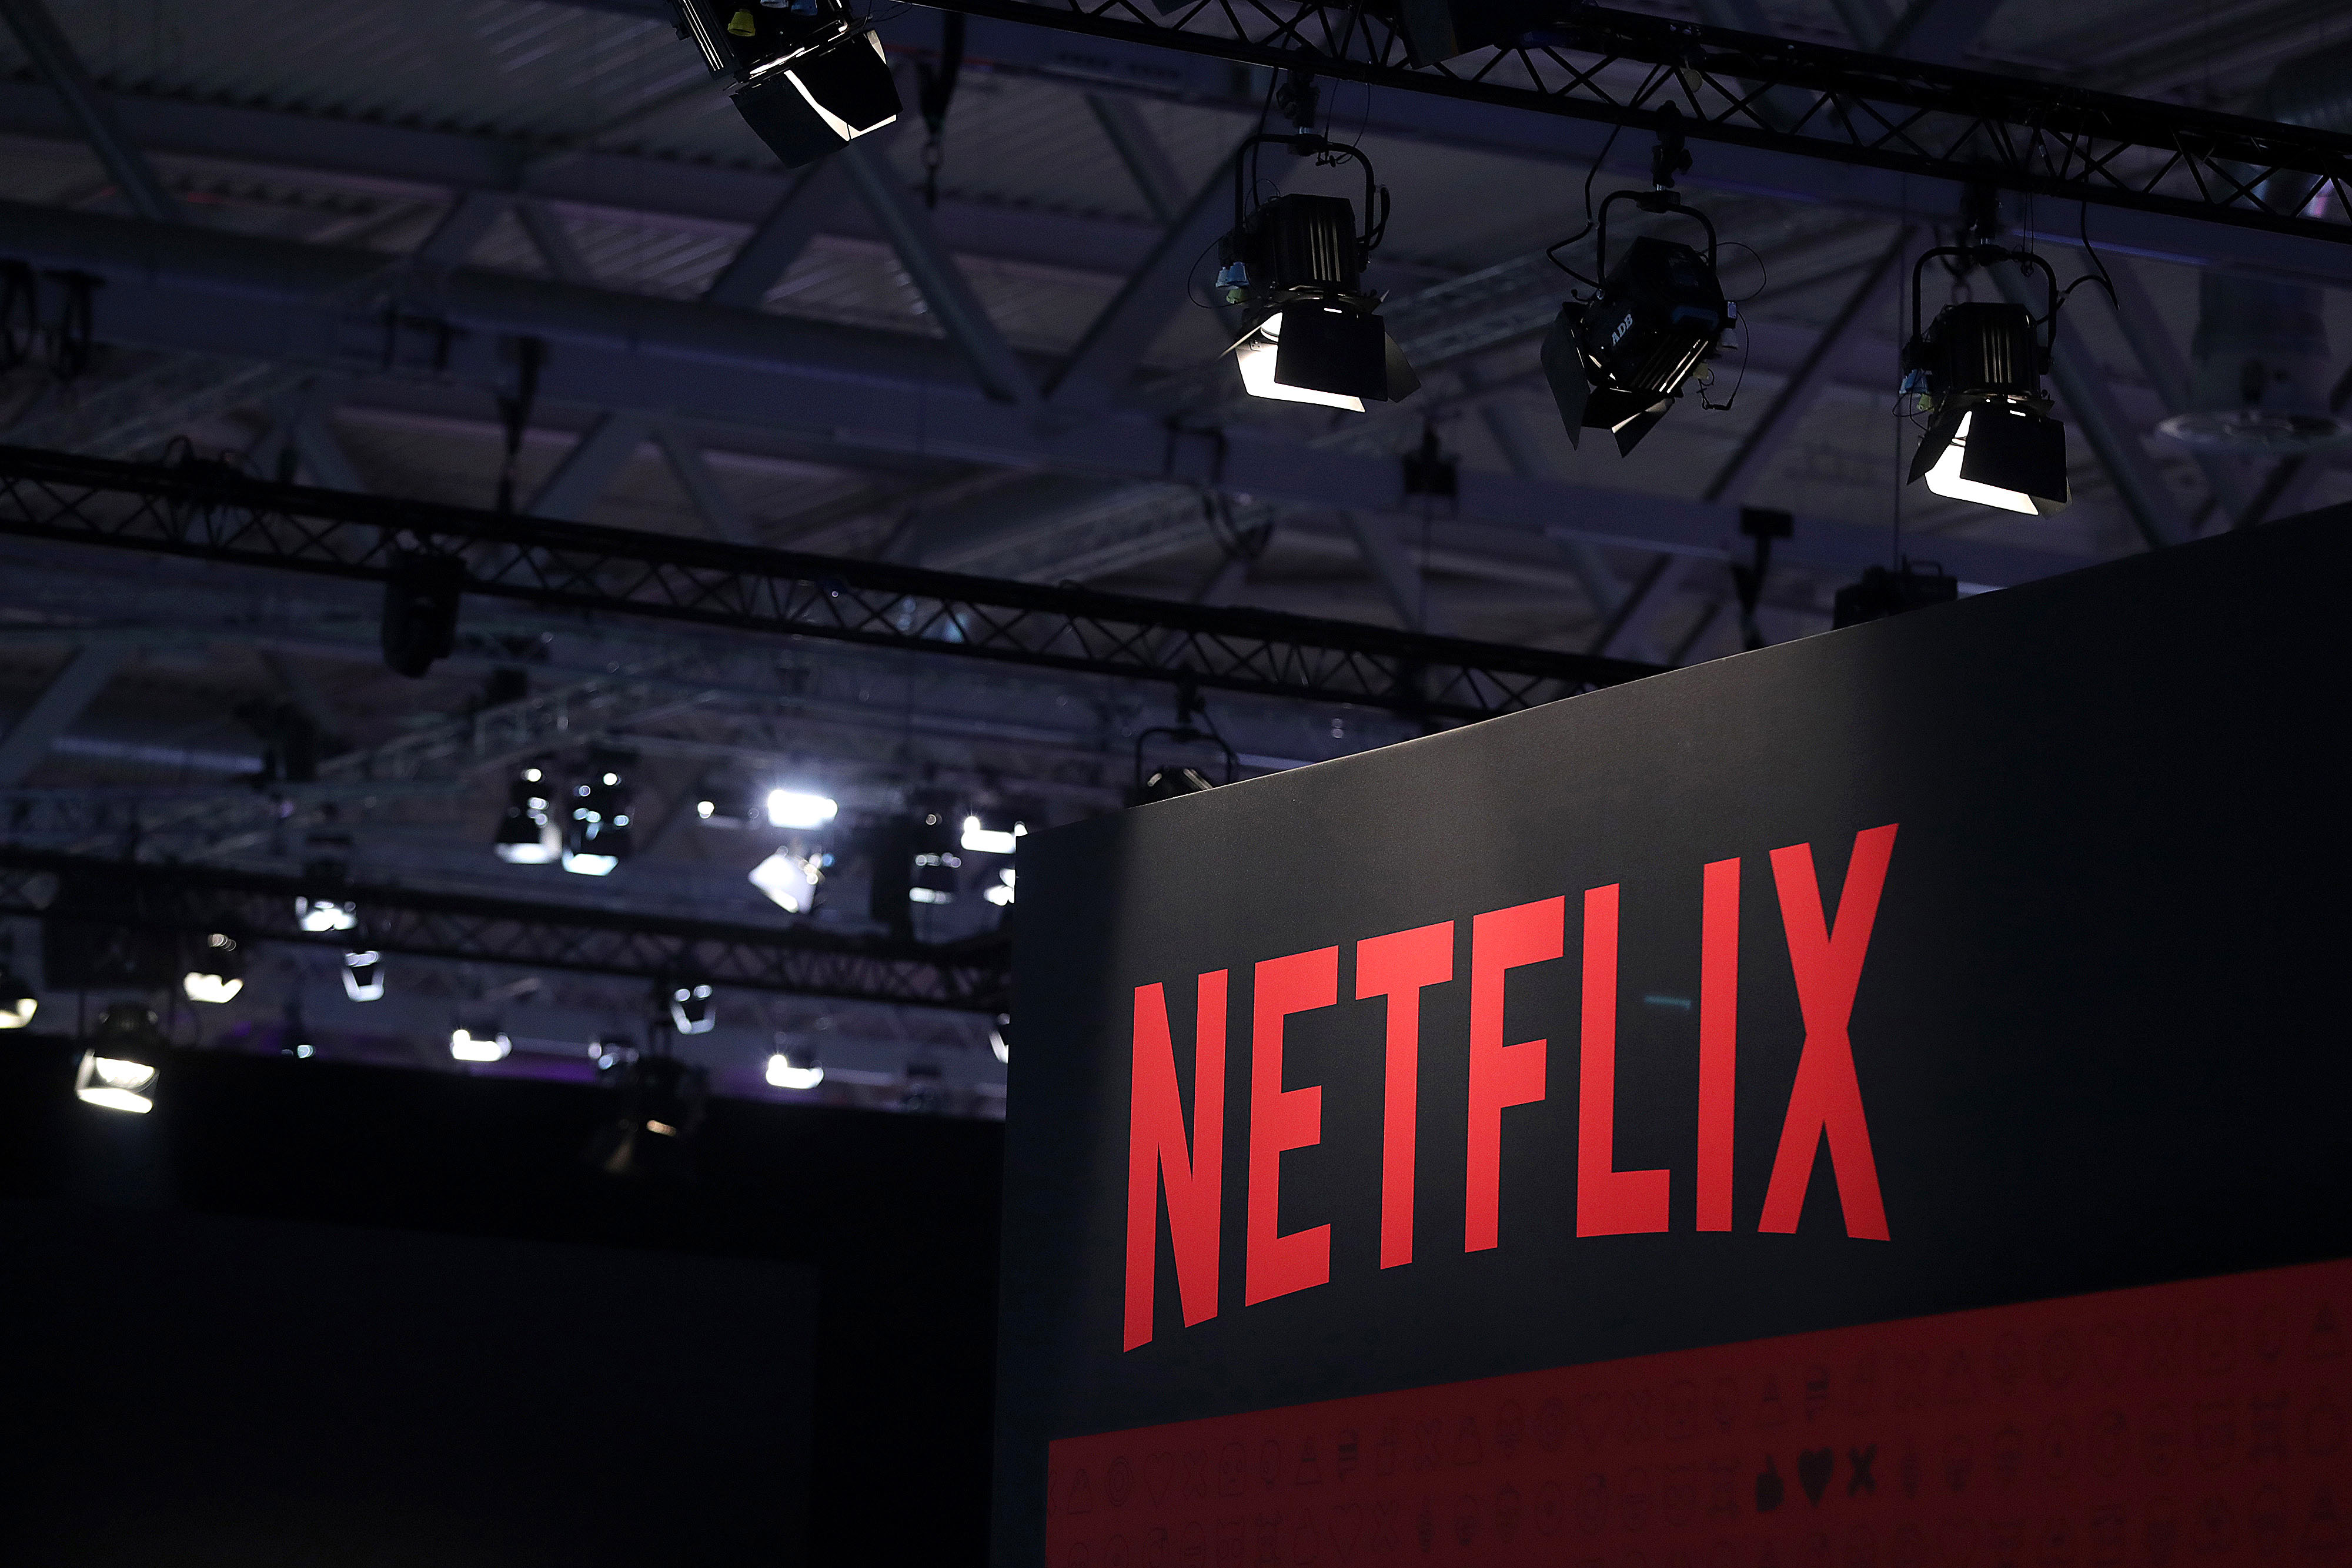 Netflix launches free plan in Kenya to boost growth – TechCrunch